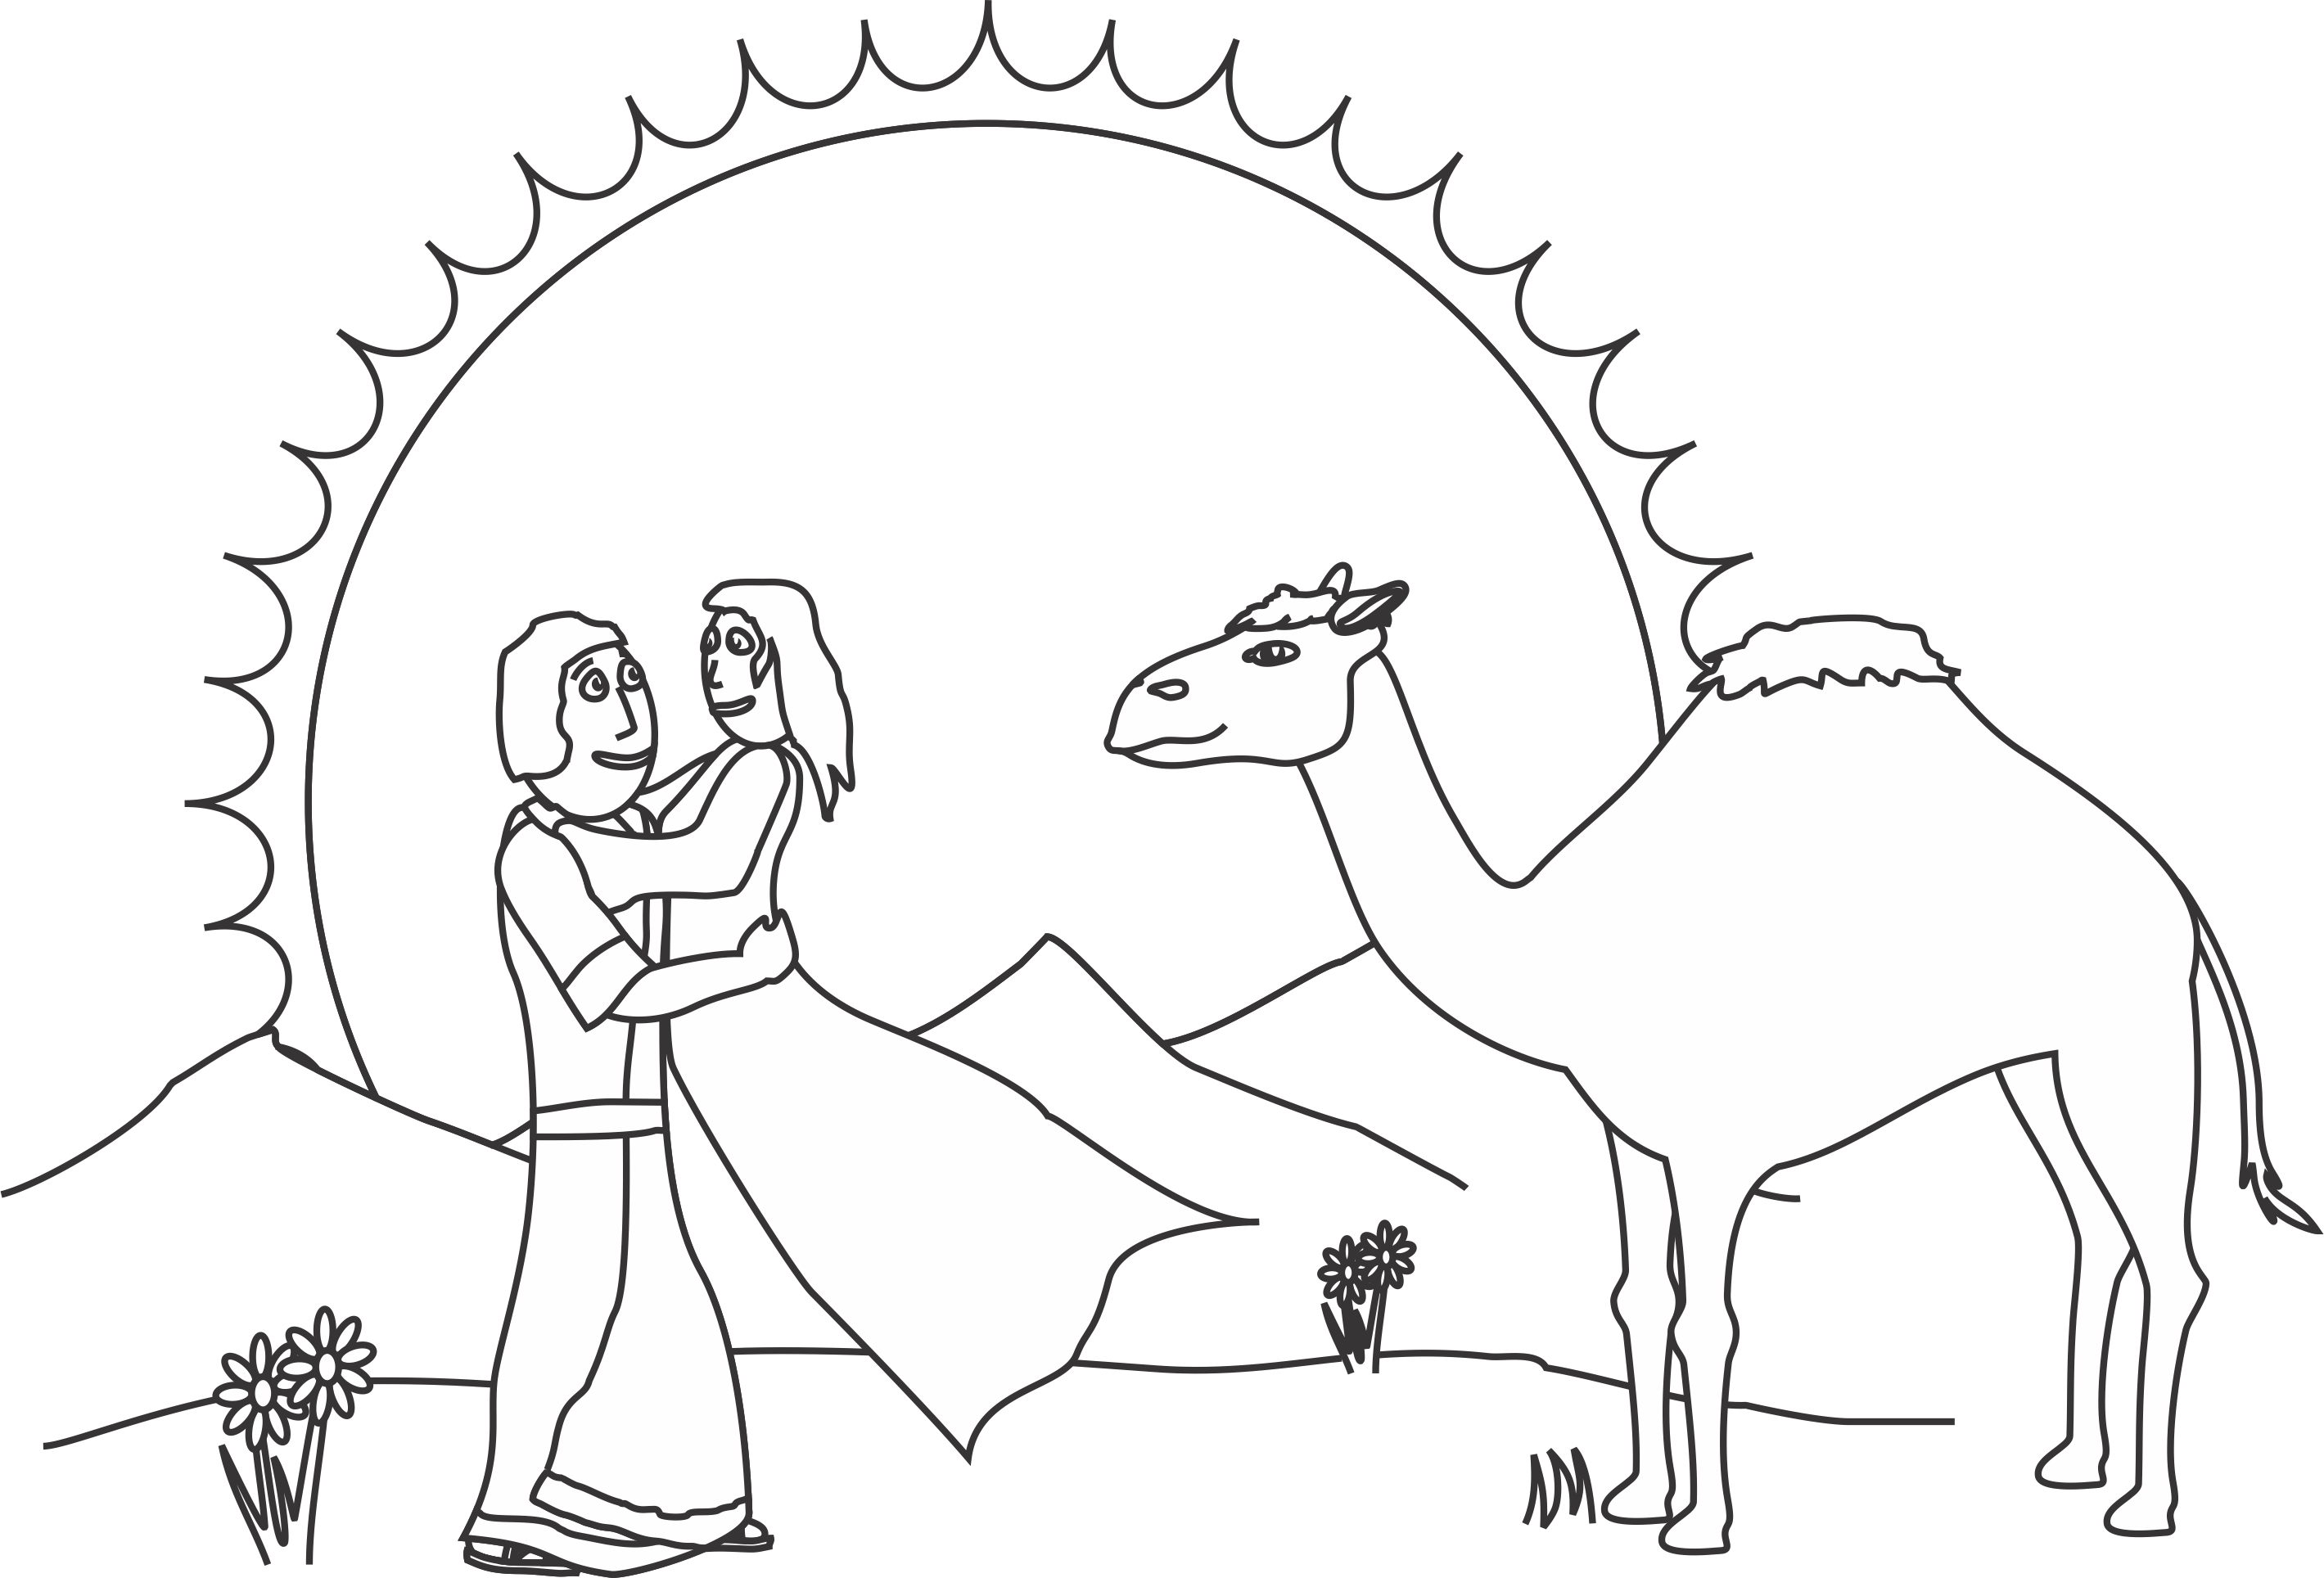 Clip Art Isaac And Rebekah Coloring Pages isaac and rebekah coloring pages eassume com 1000 images about our bible on pinterest my